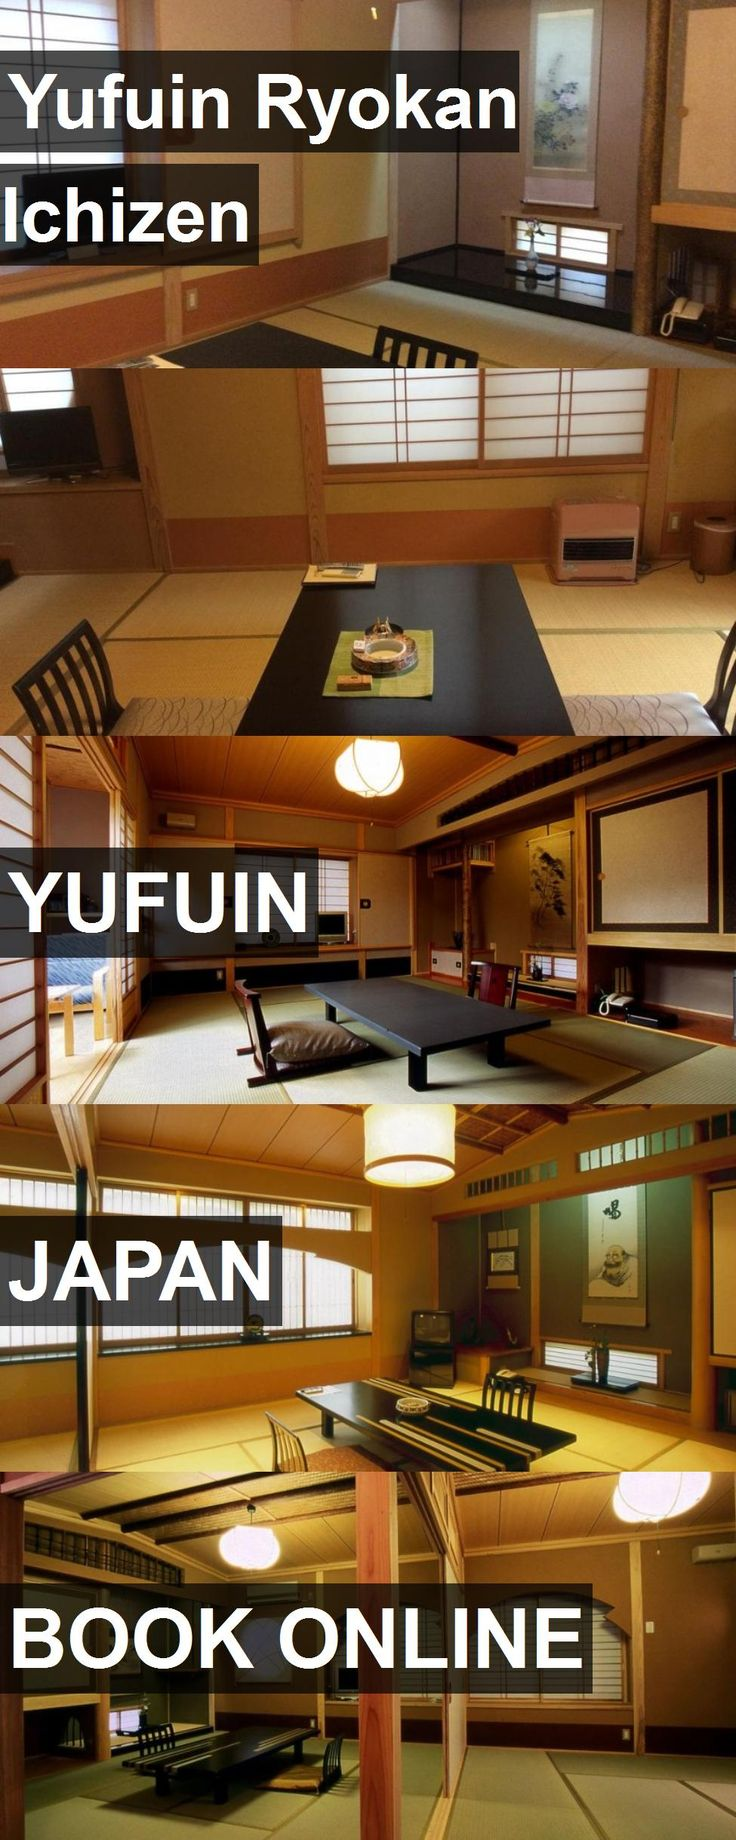 Hotel Yufuin Ryokan Ichizen in Yufuin, Japan. For more information, photos, reviews and best prices please follow the link. #Japan #Yufuin #YufuinRyokanIchizen #hotel #travel #vacation